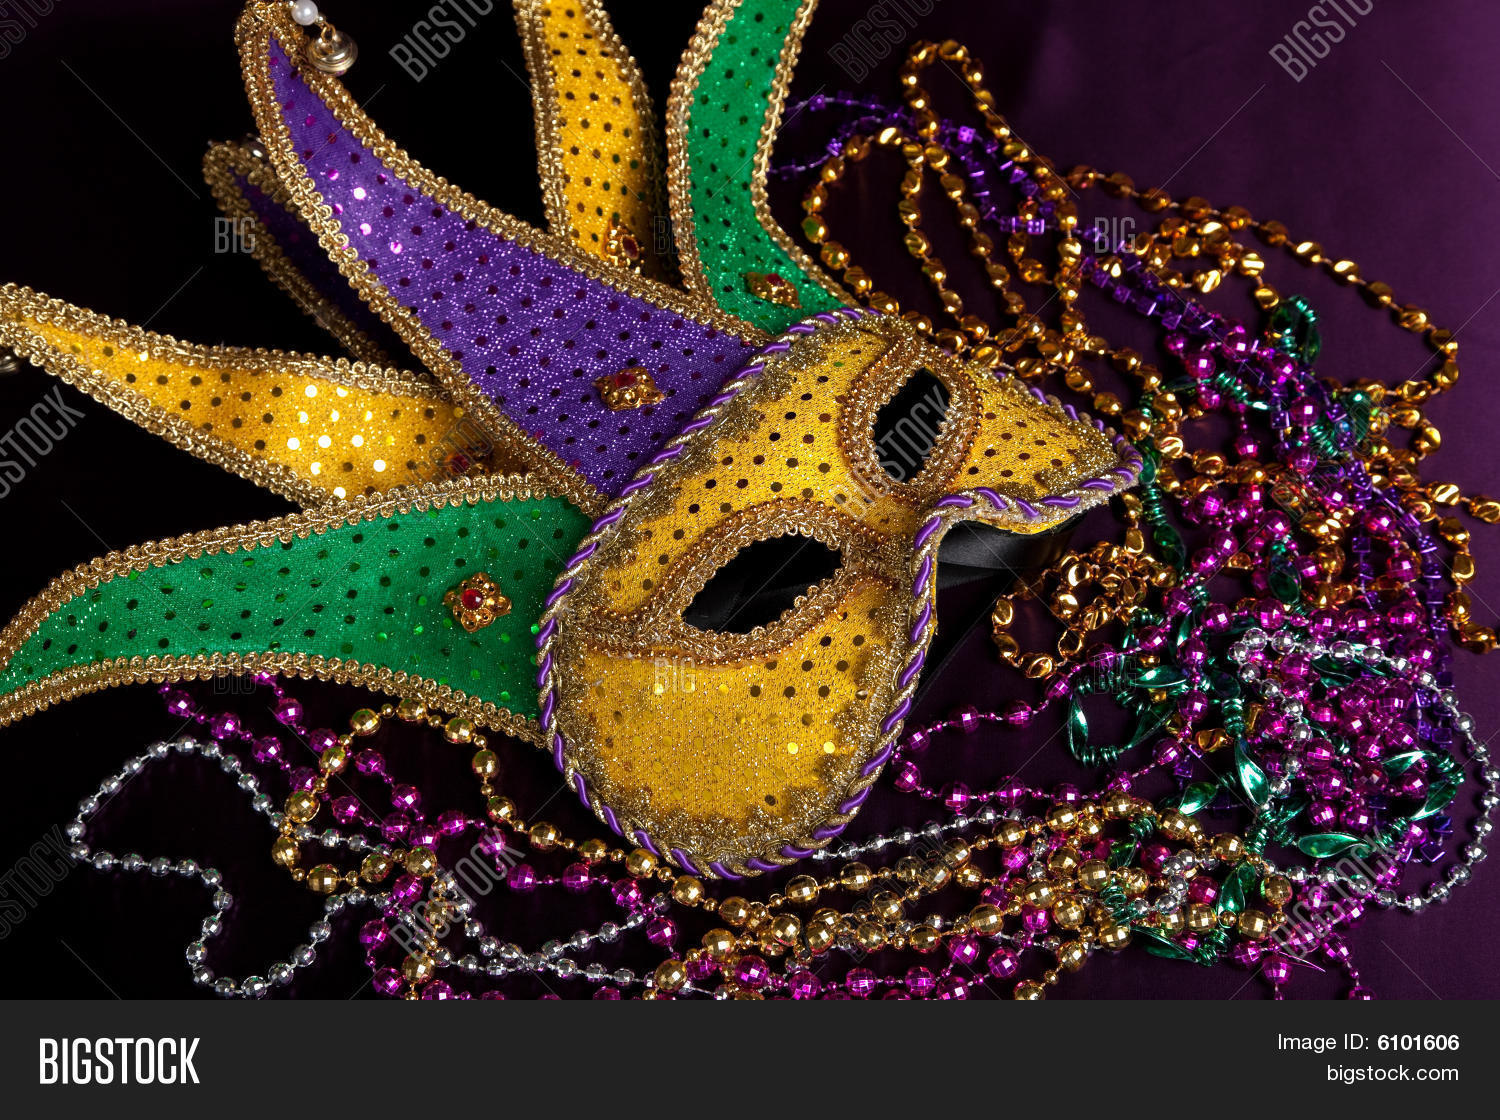 gras people meeting wallpaper mask carnival s spring holidays mardi christian peoples beads resolution your